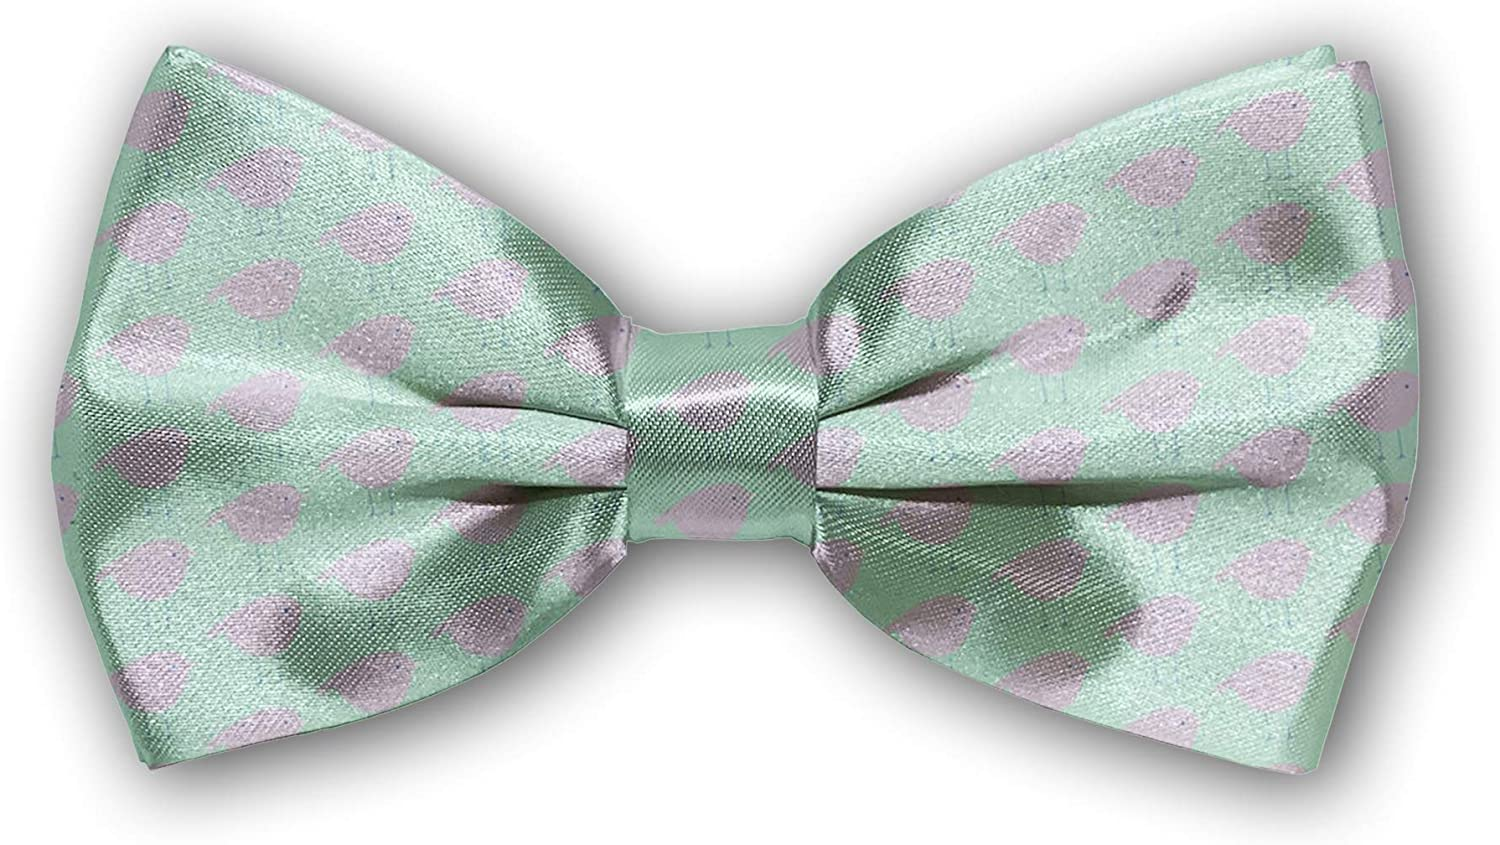 Bow Tie Purchase Regular store Tuxedo Butterfly Cotton Boys Bowtie Adjustable for Mens